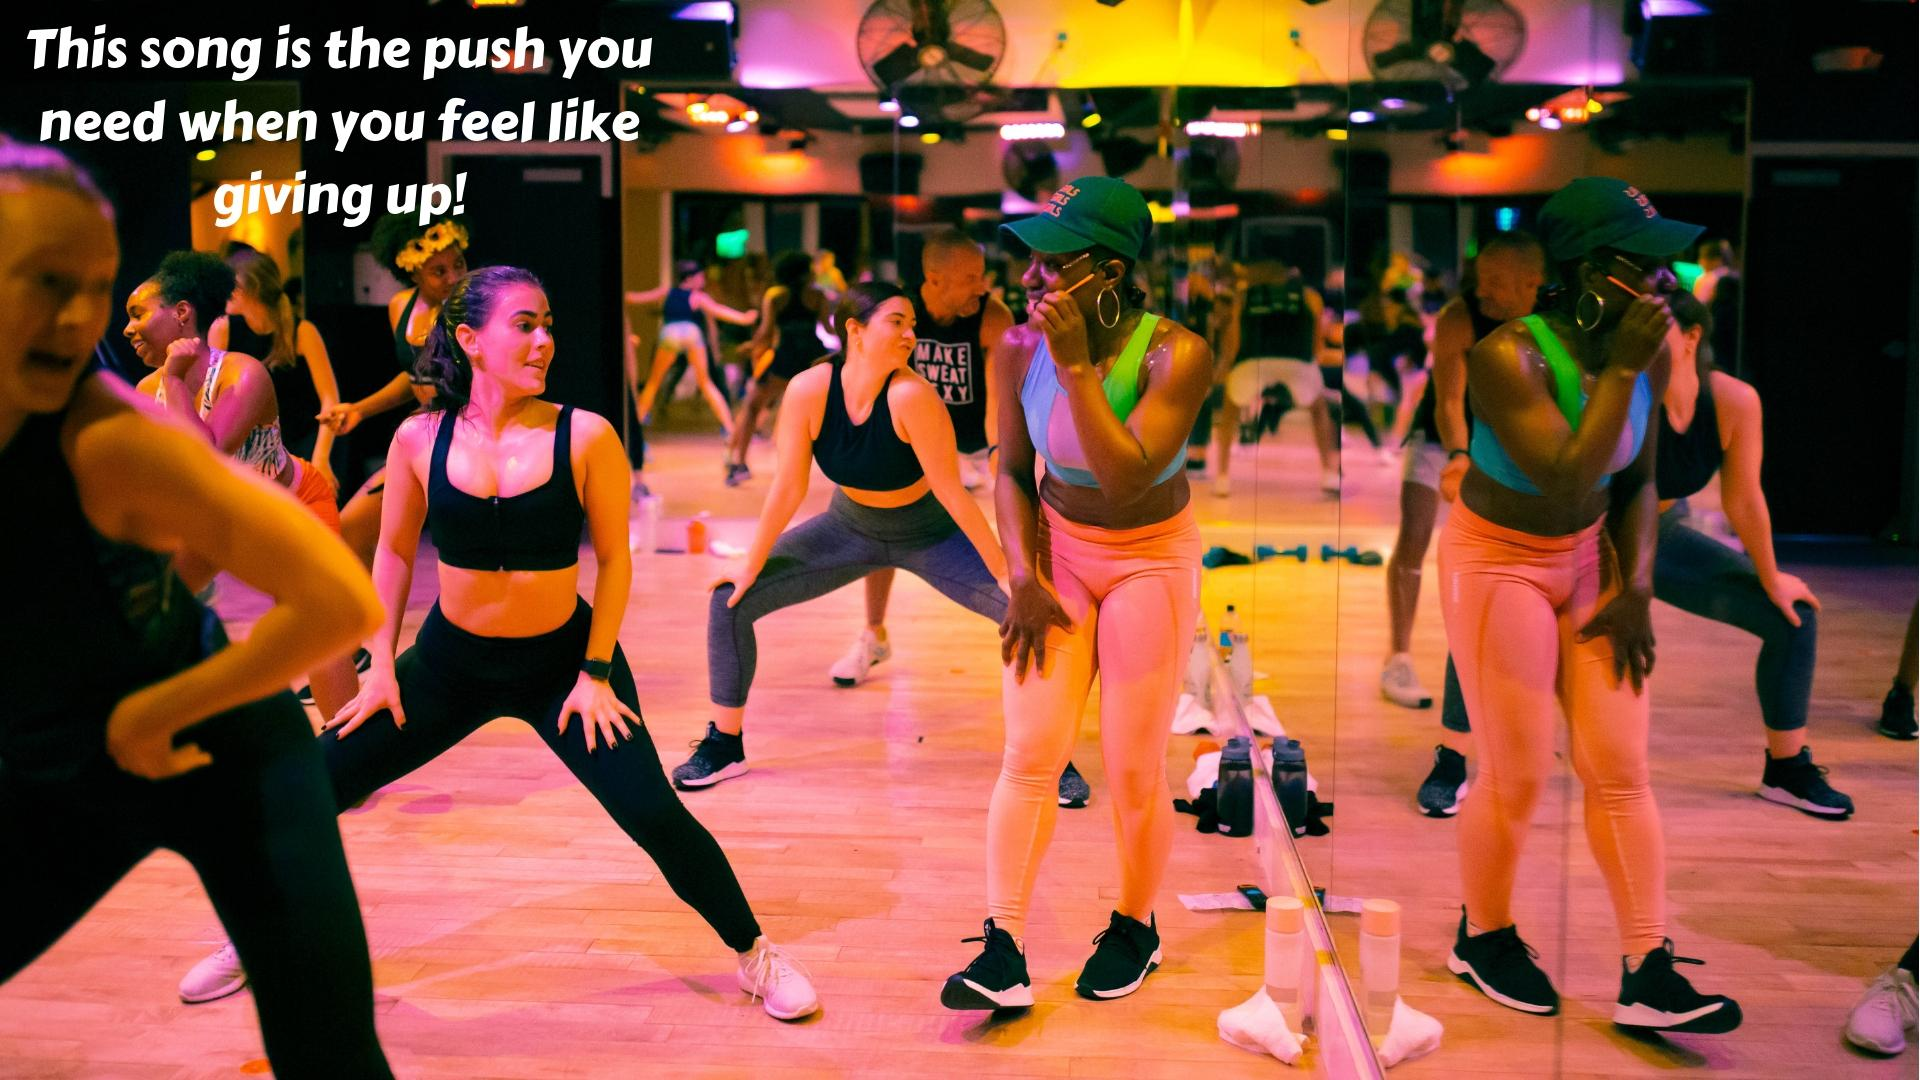 "<p>Nice For What by Drake (Uptempo Remix): ""This song is the push you need when you feel like giving up. The New Orleans Bounce beat forces you to get up, dust yourself off and TWERK!"" (Image: Courtesy 305 Fitness)</p>"